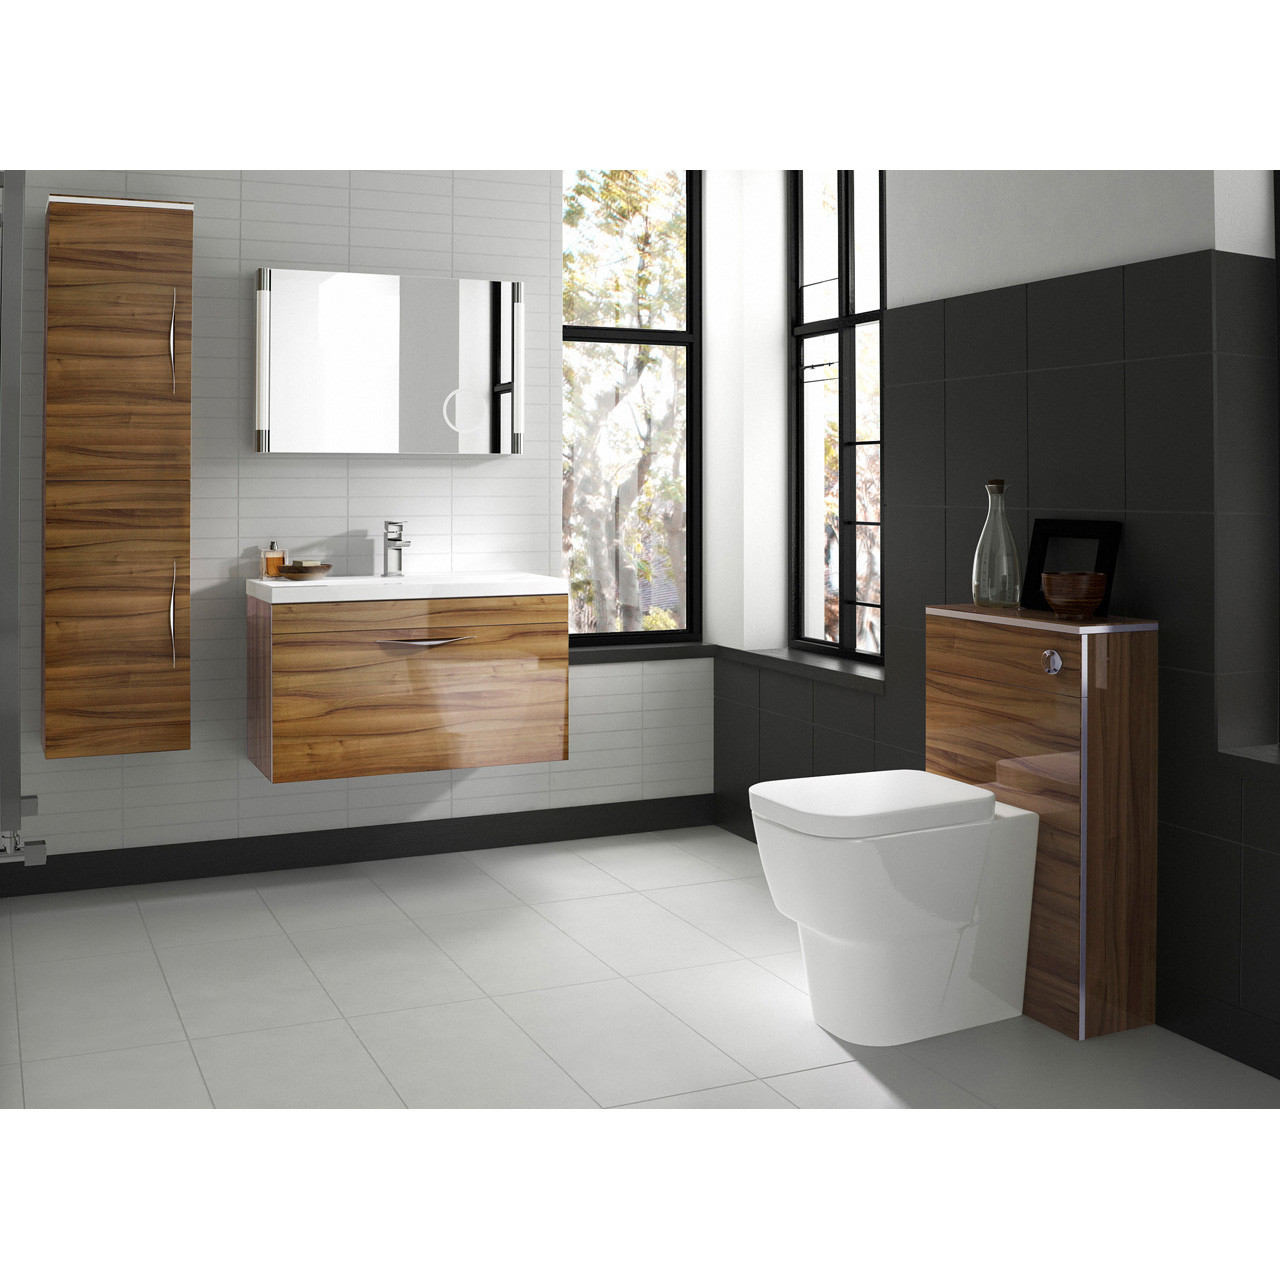 Hudson reed bathroom cabinets - Hudson Reed Memoir Gloss Walnut Wall Hung 600mm Cabinet 40mm Profile Basin Cab180 Nvm013